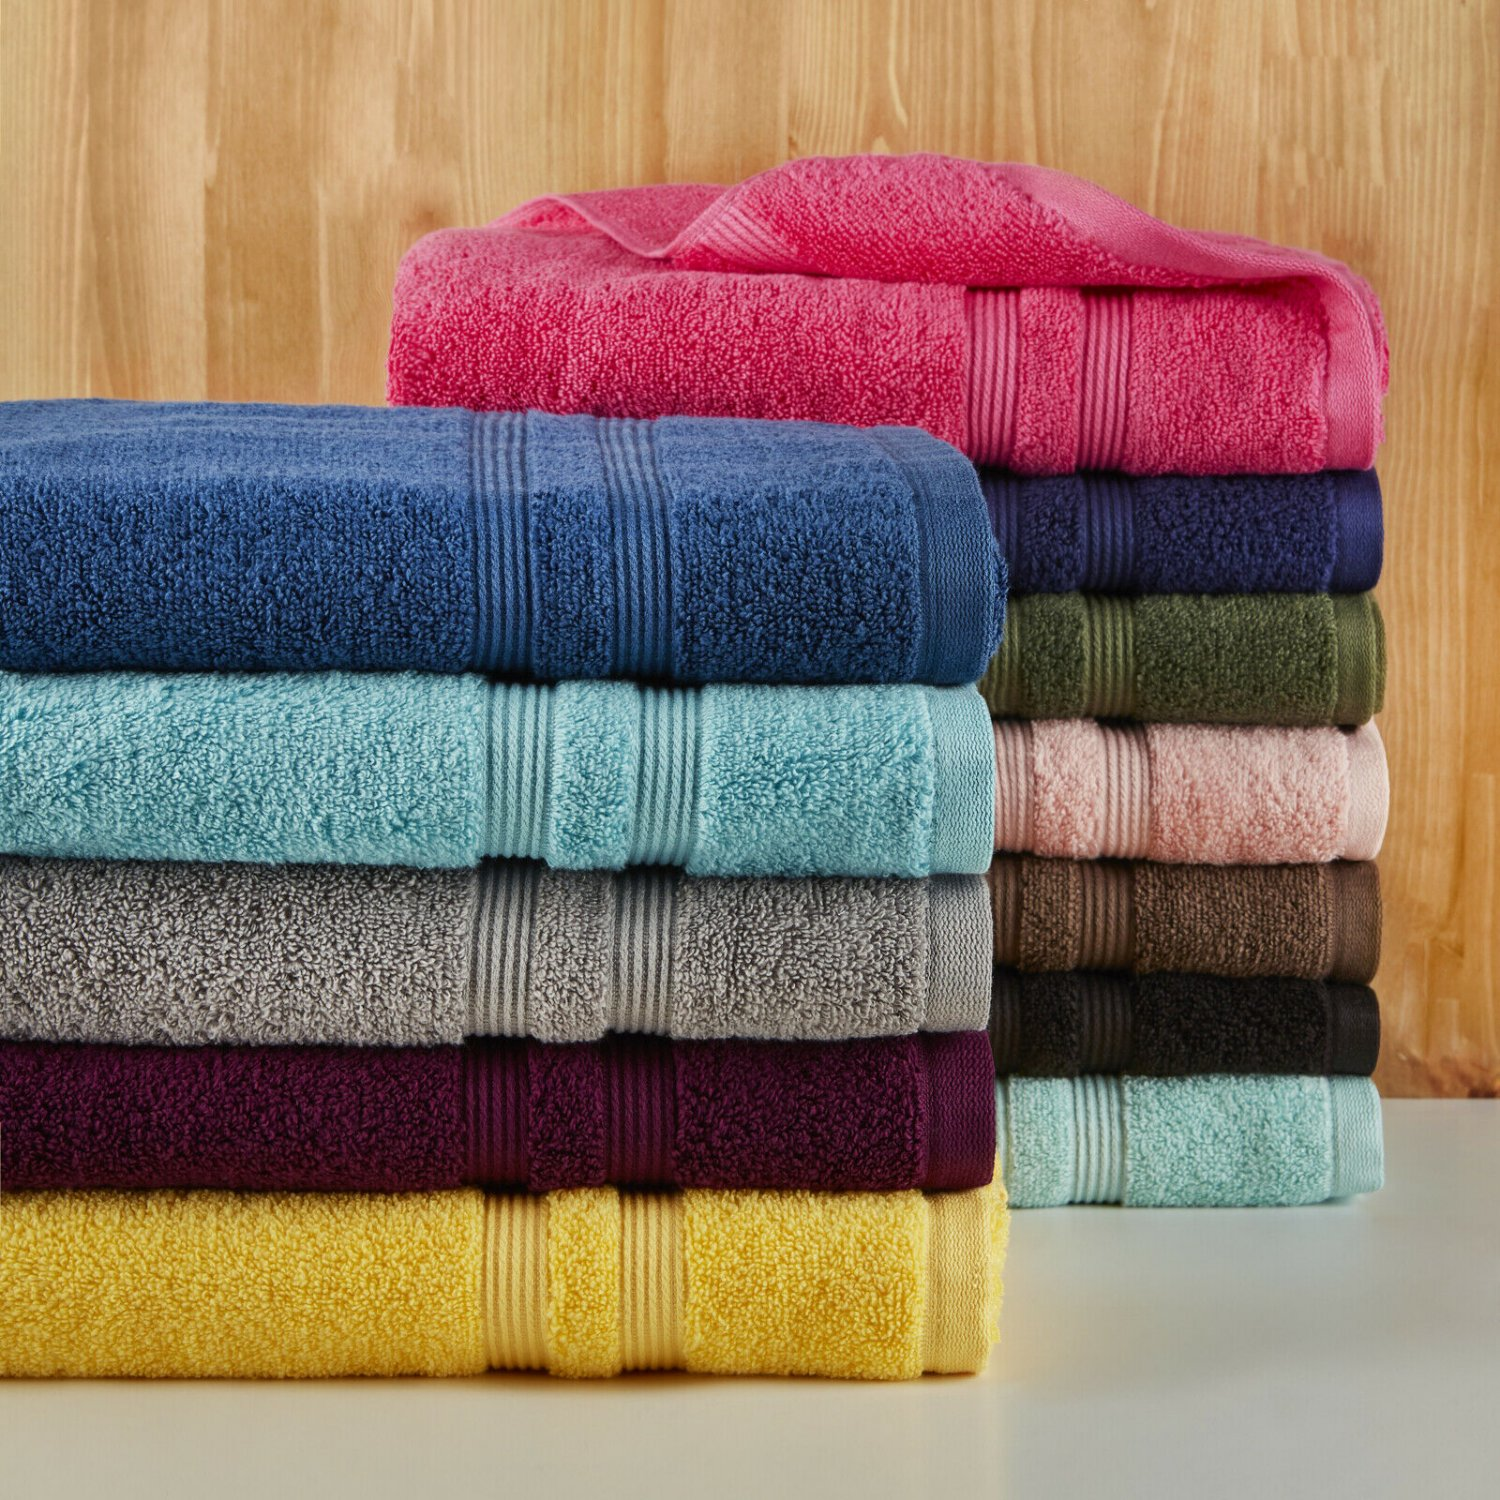 Solid Performance Cotton Towel Set - 6 Piece Set by Mainstays